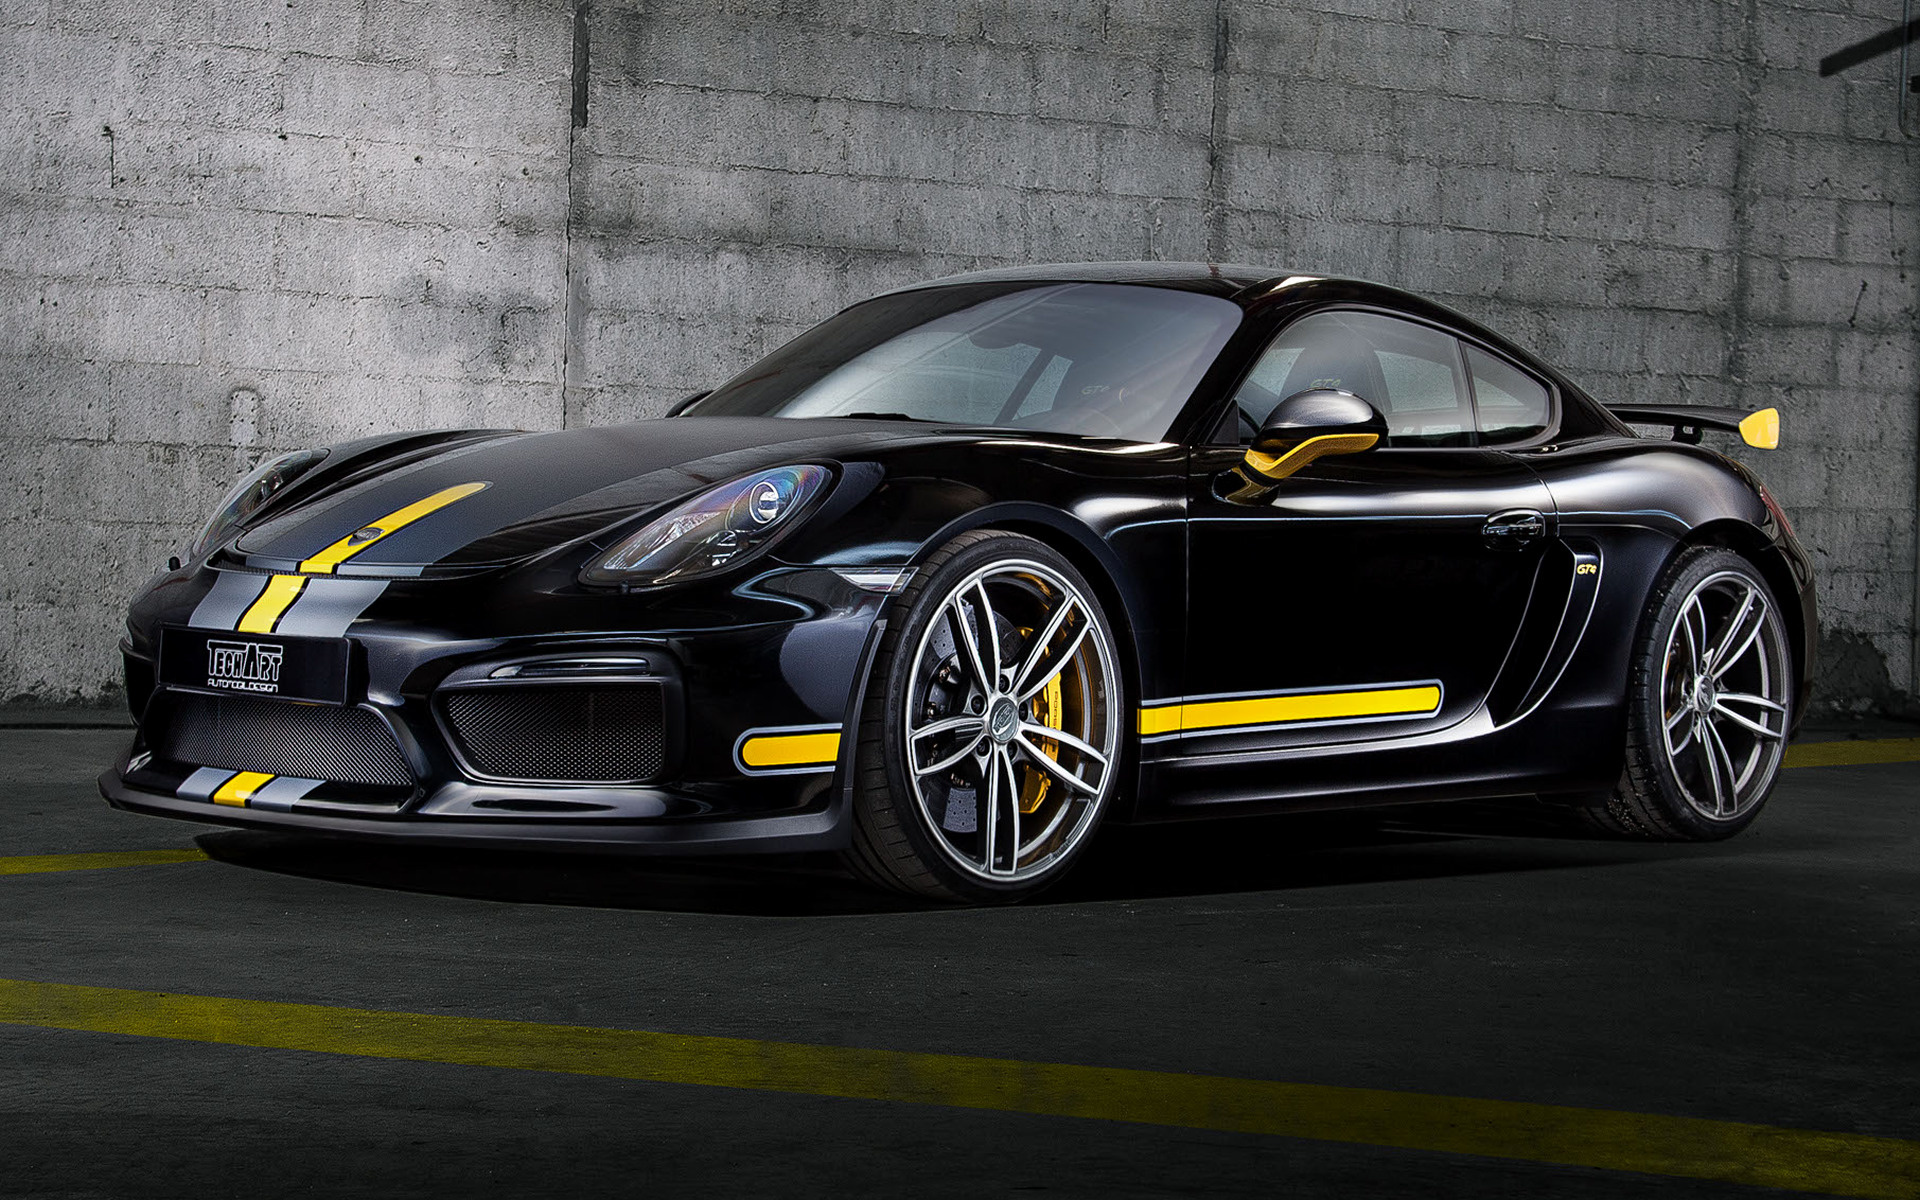 2016 Porsche Cayman Gt4 By Techart Wallpapers And Hd